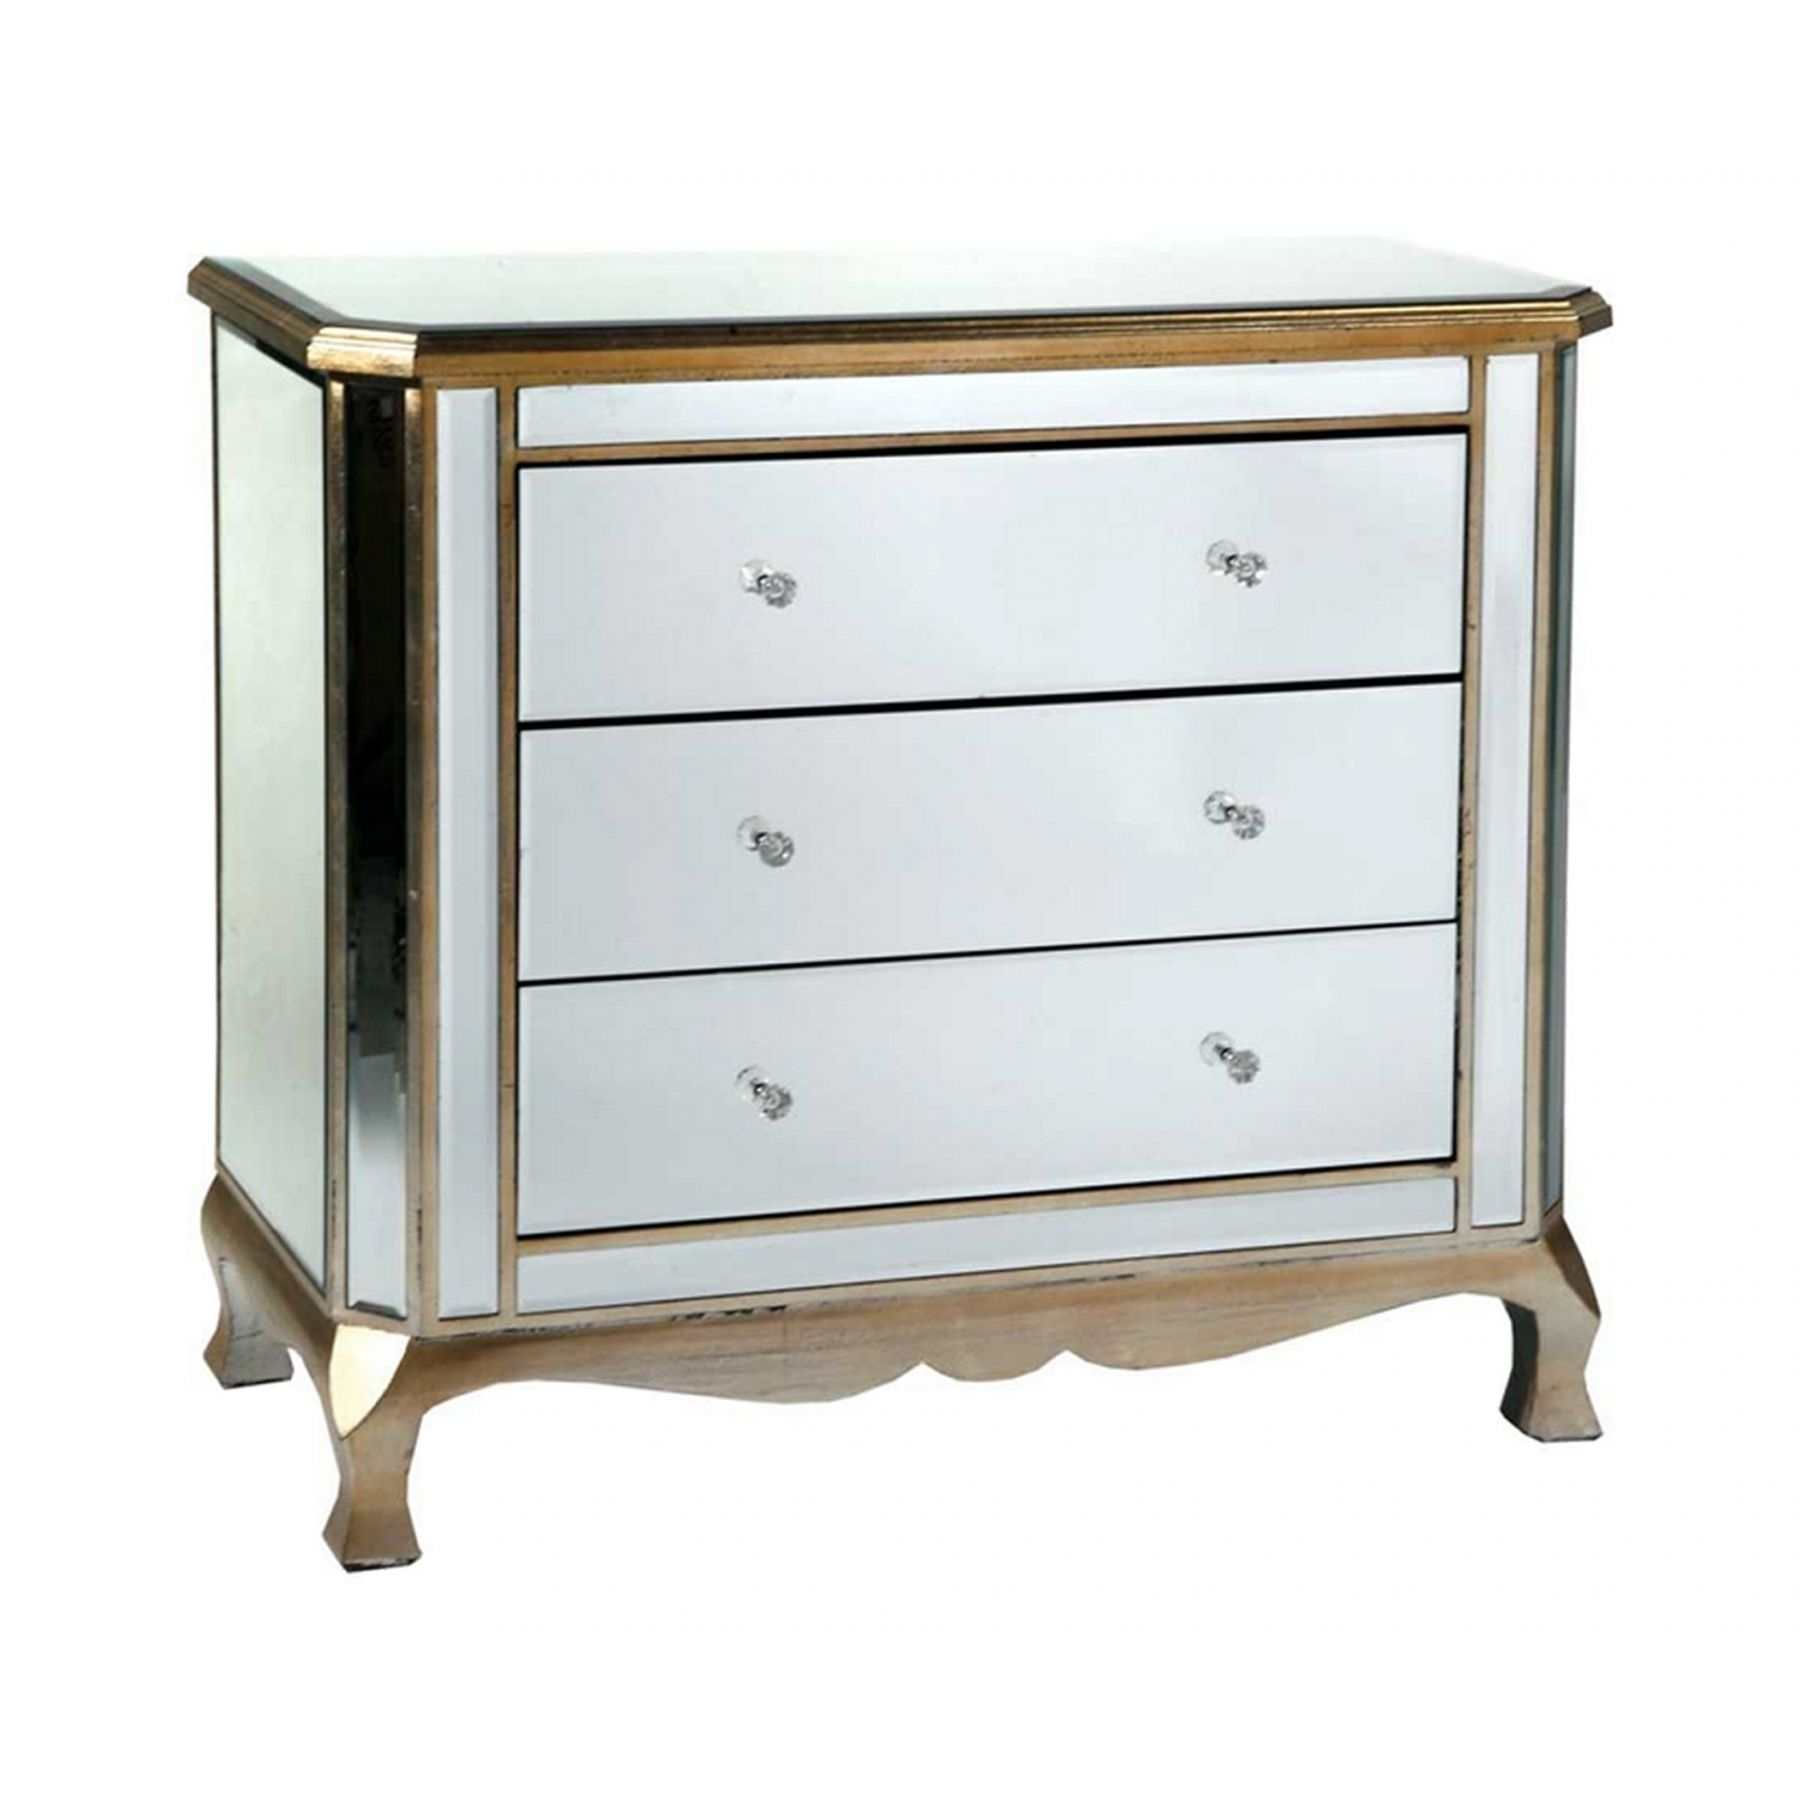 Mirrored Chest Of Drawers Gold Trim Venetian Furniture Pertaining To Venetian Mirrored Chest Of Drawers (Image 5 of 15)